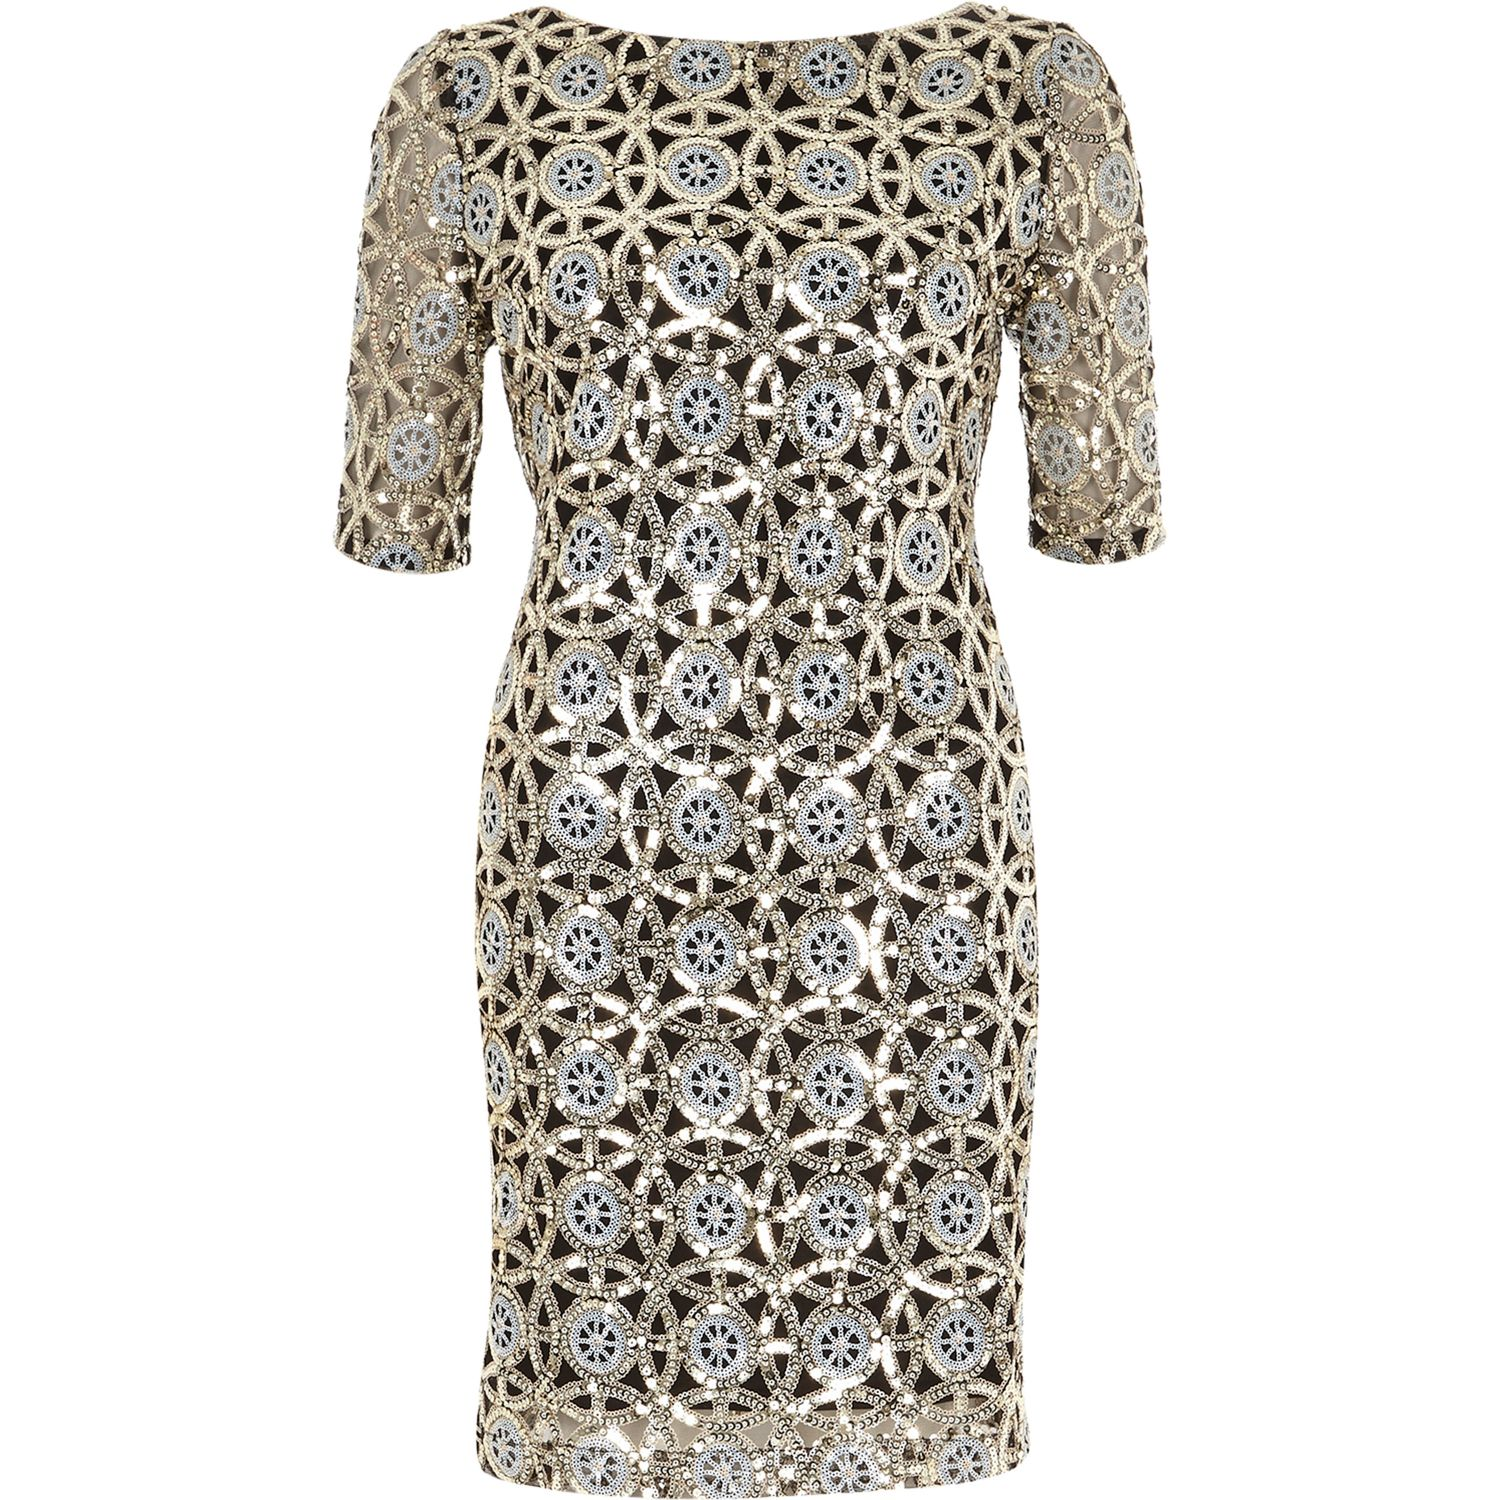 River island silver sequin bodycon dress the best holiday party